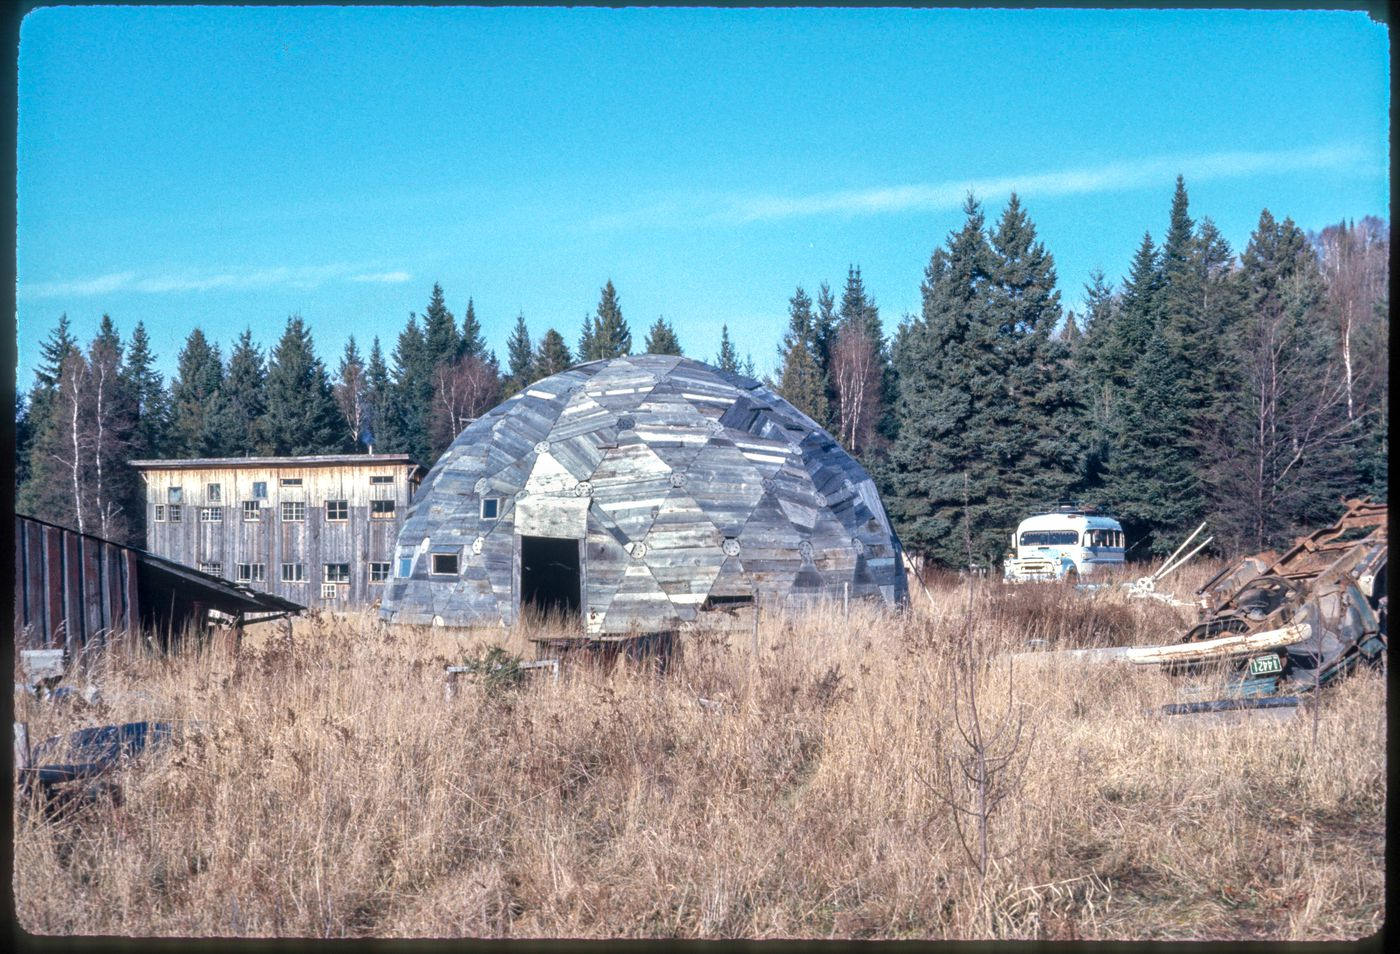 There's No Place Like Dome - Curbed